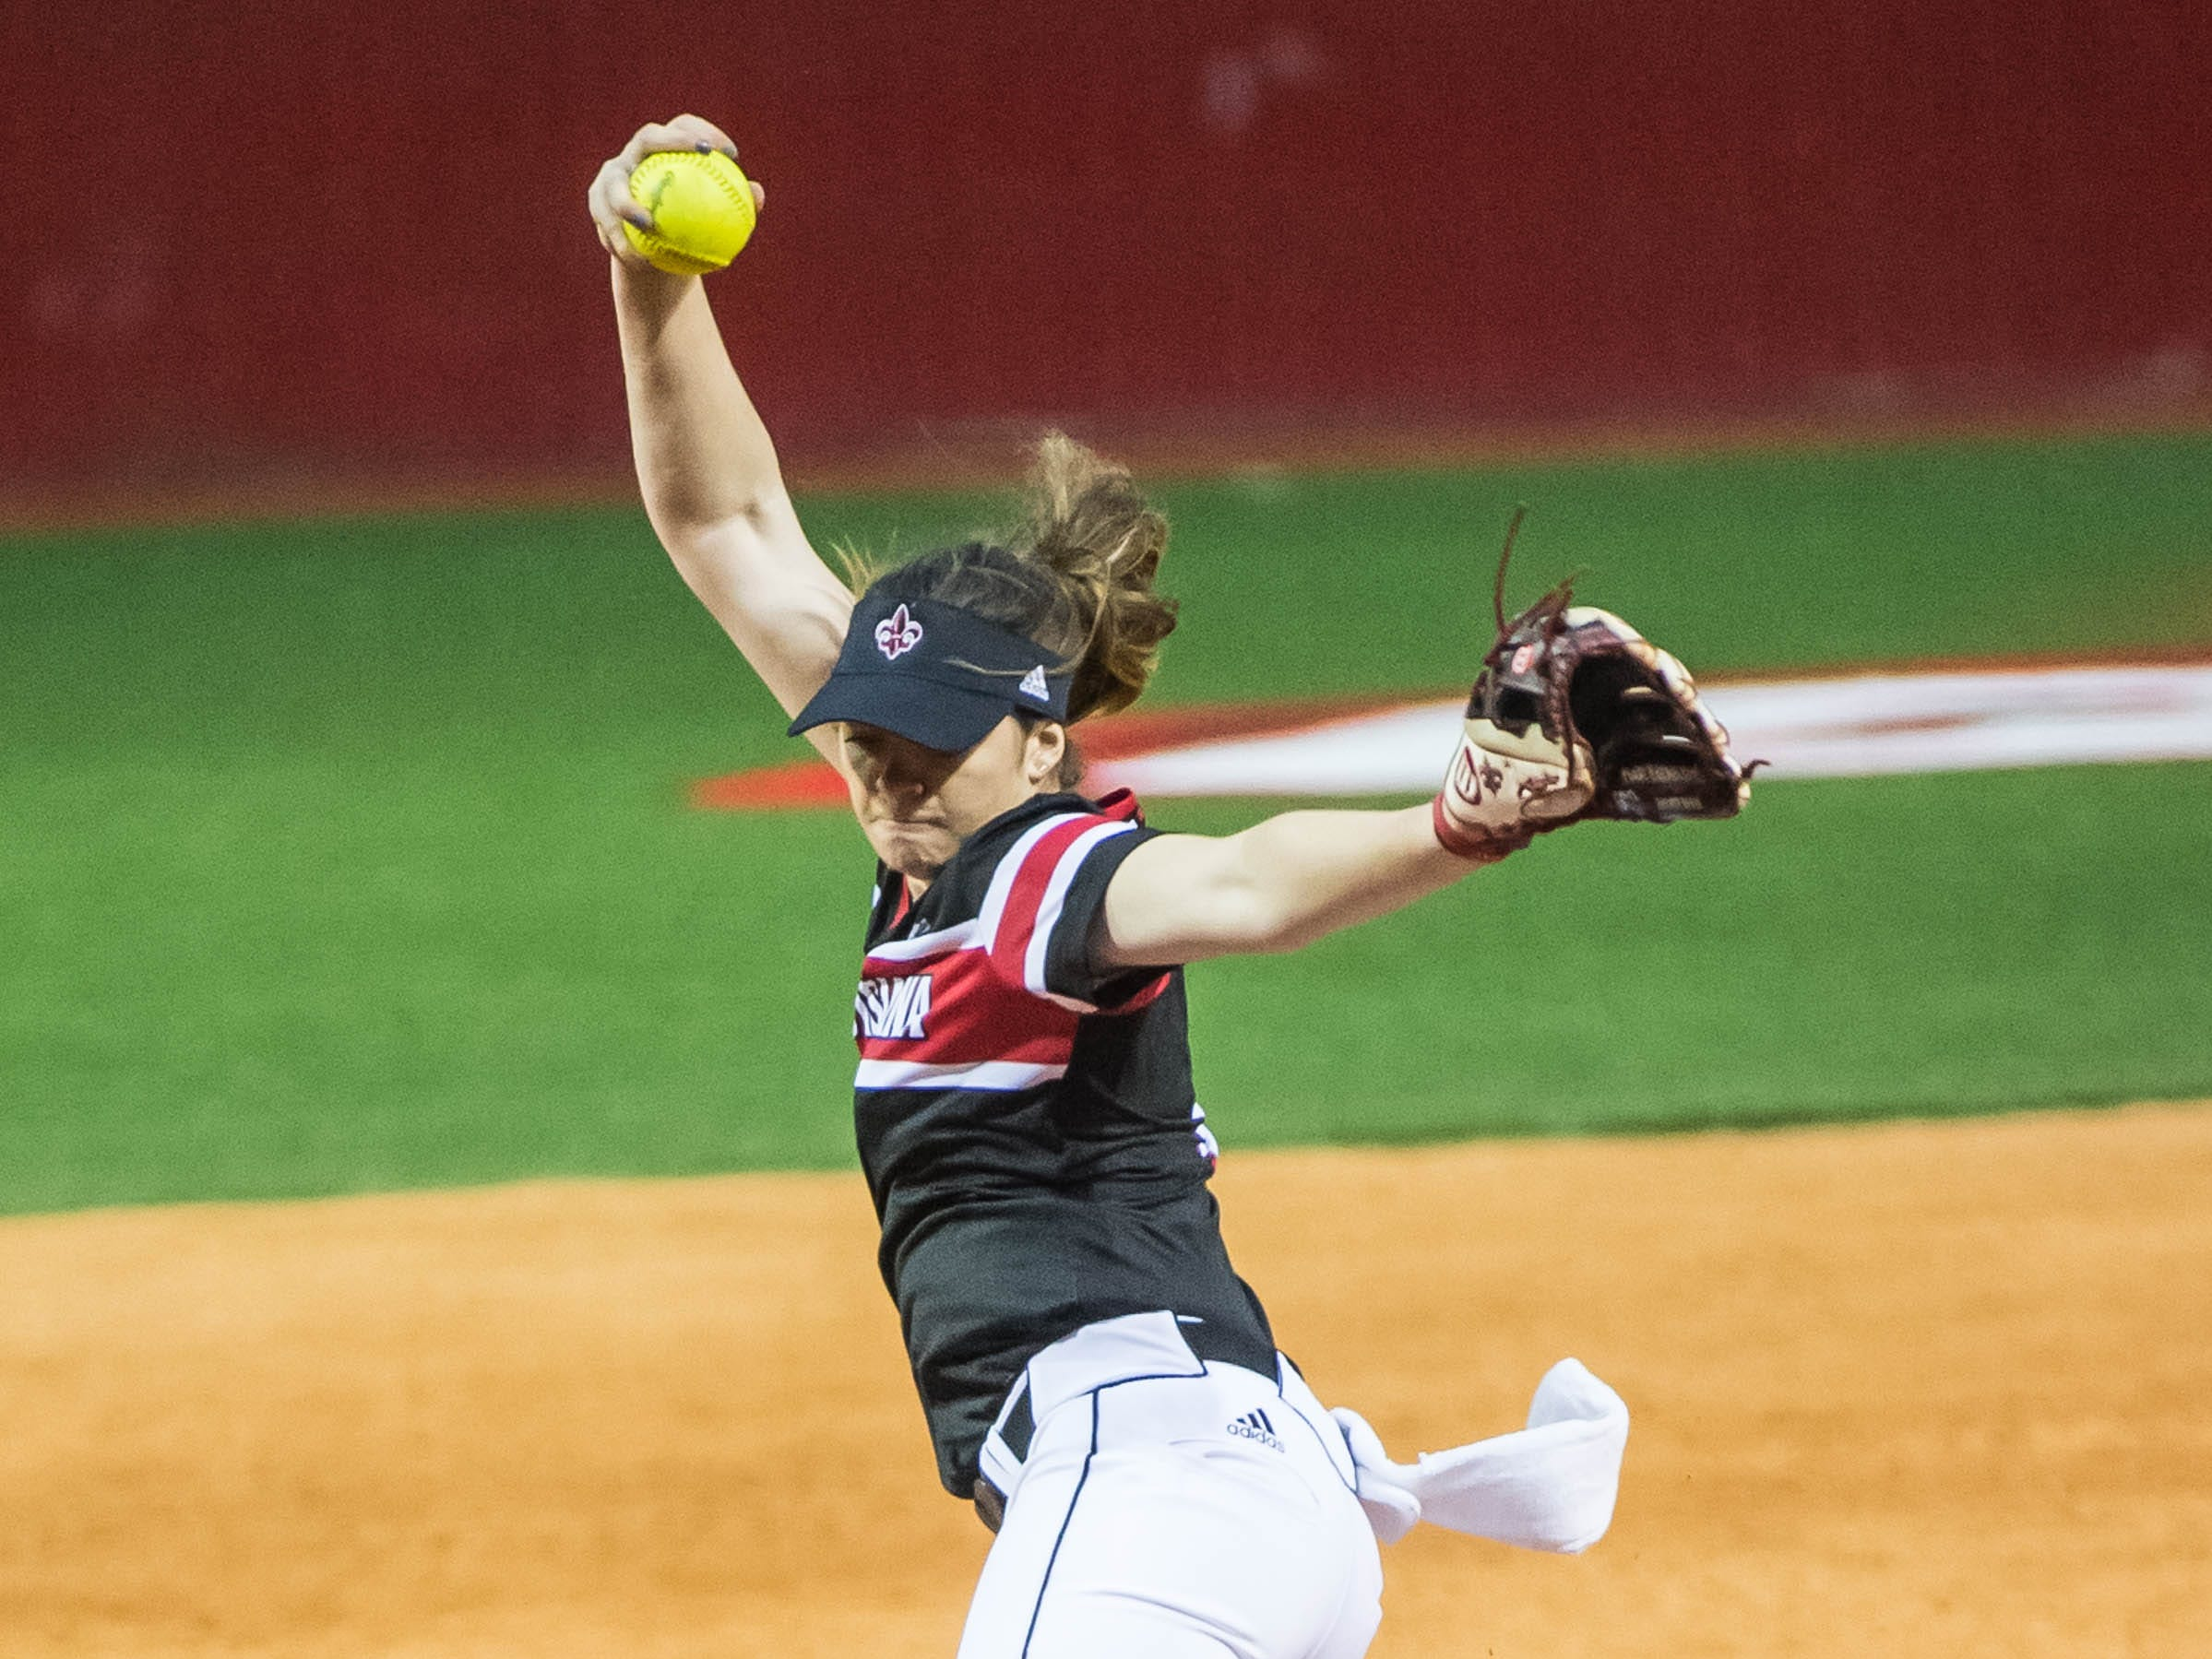 UL pitcher Summer Ellyson (9) has 16 strike outs in the Ragin' Cajuns'  opening game of the 2019 softball season against Fordham at Lamson Park on Thursday, Feb. 7, 2019.